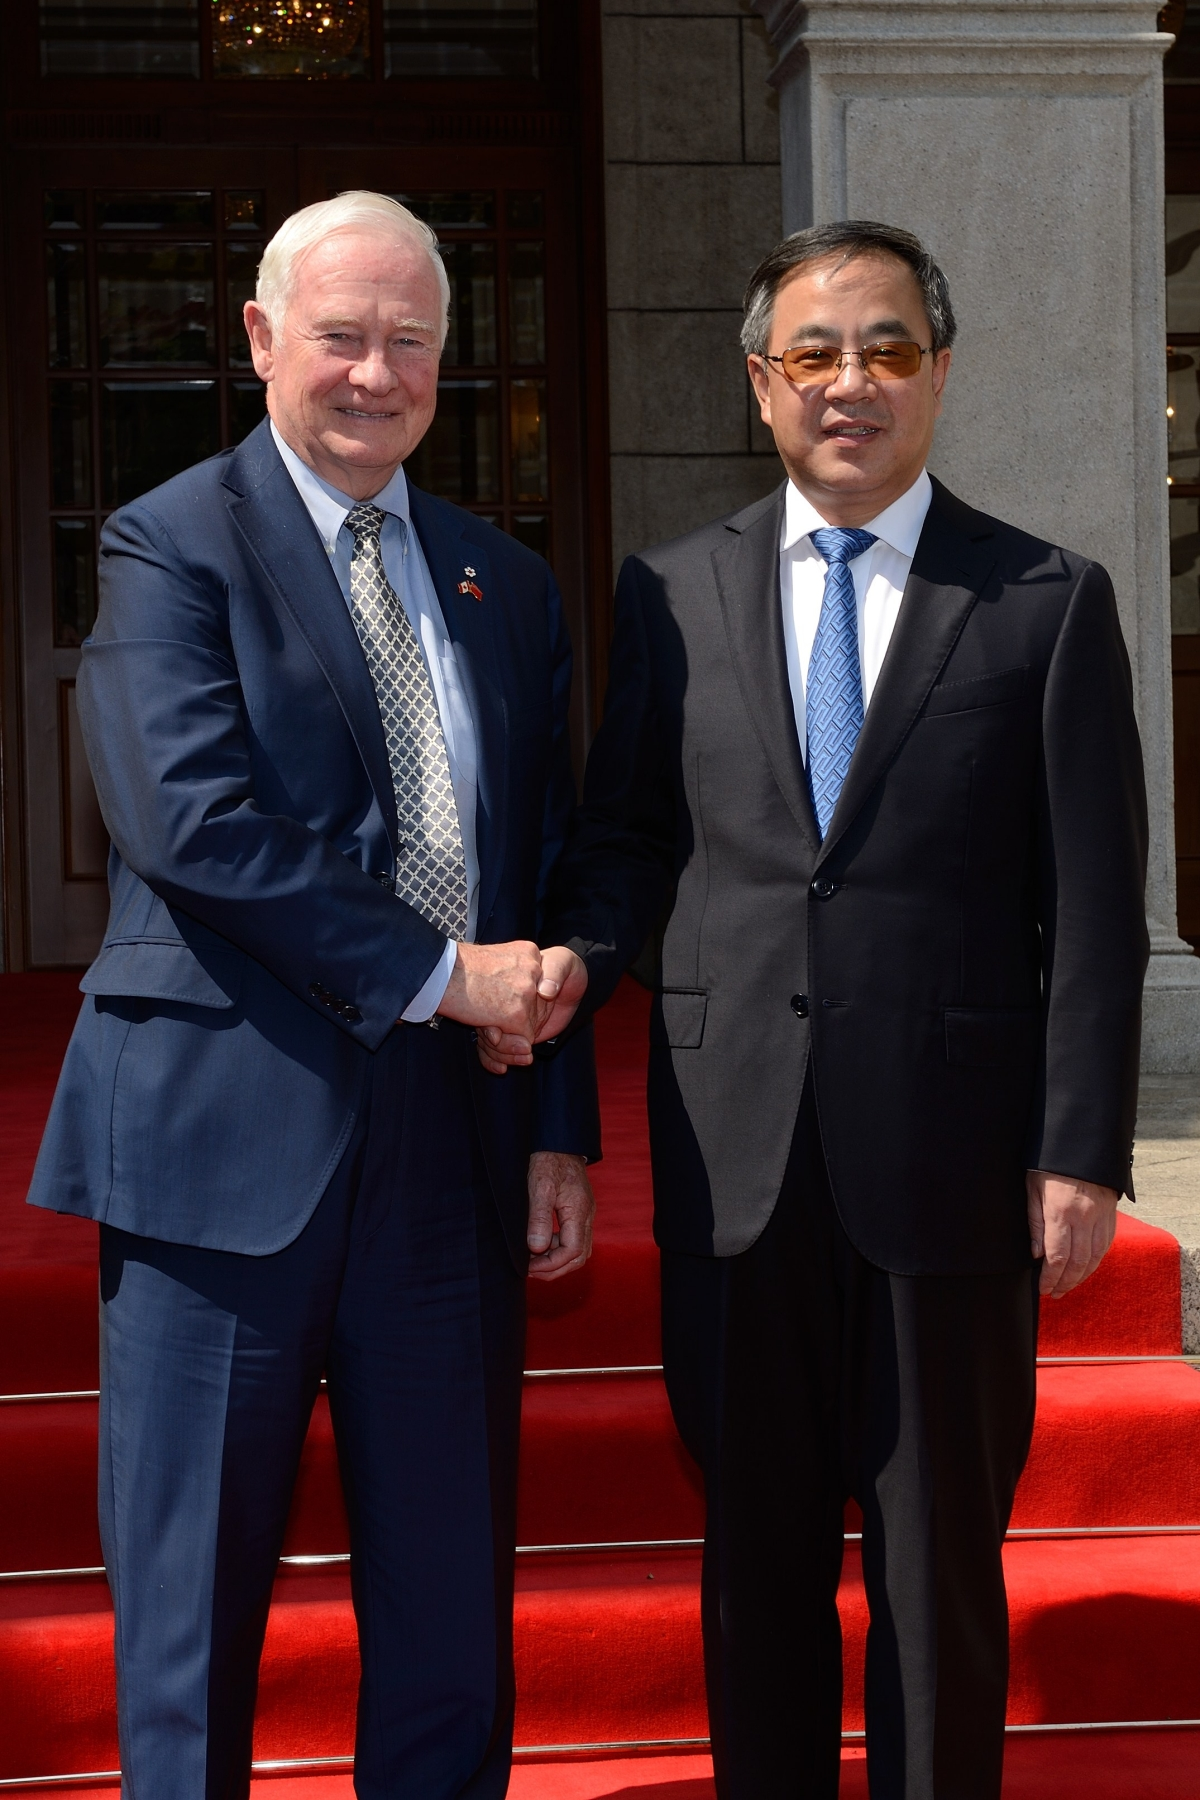 Prior to his departure from China, the Governor General met with His Excellency Hu Chunhua, Party Secretary of Guangdong Province.